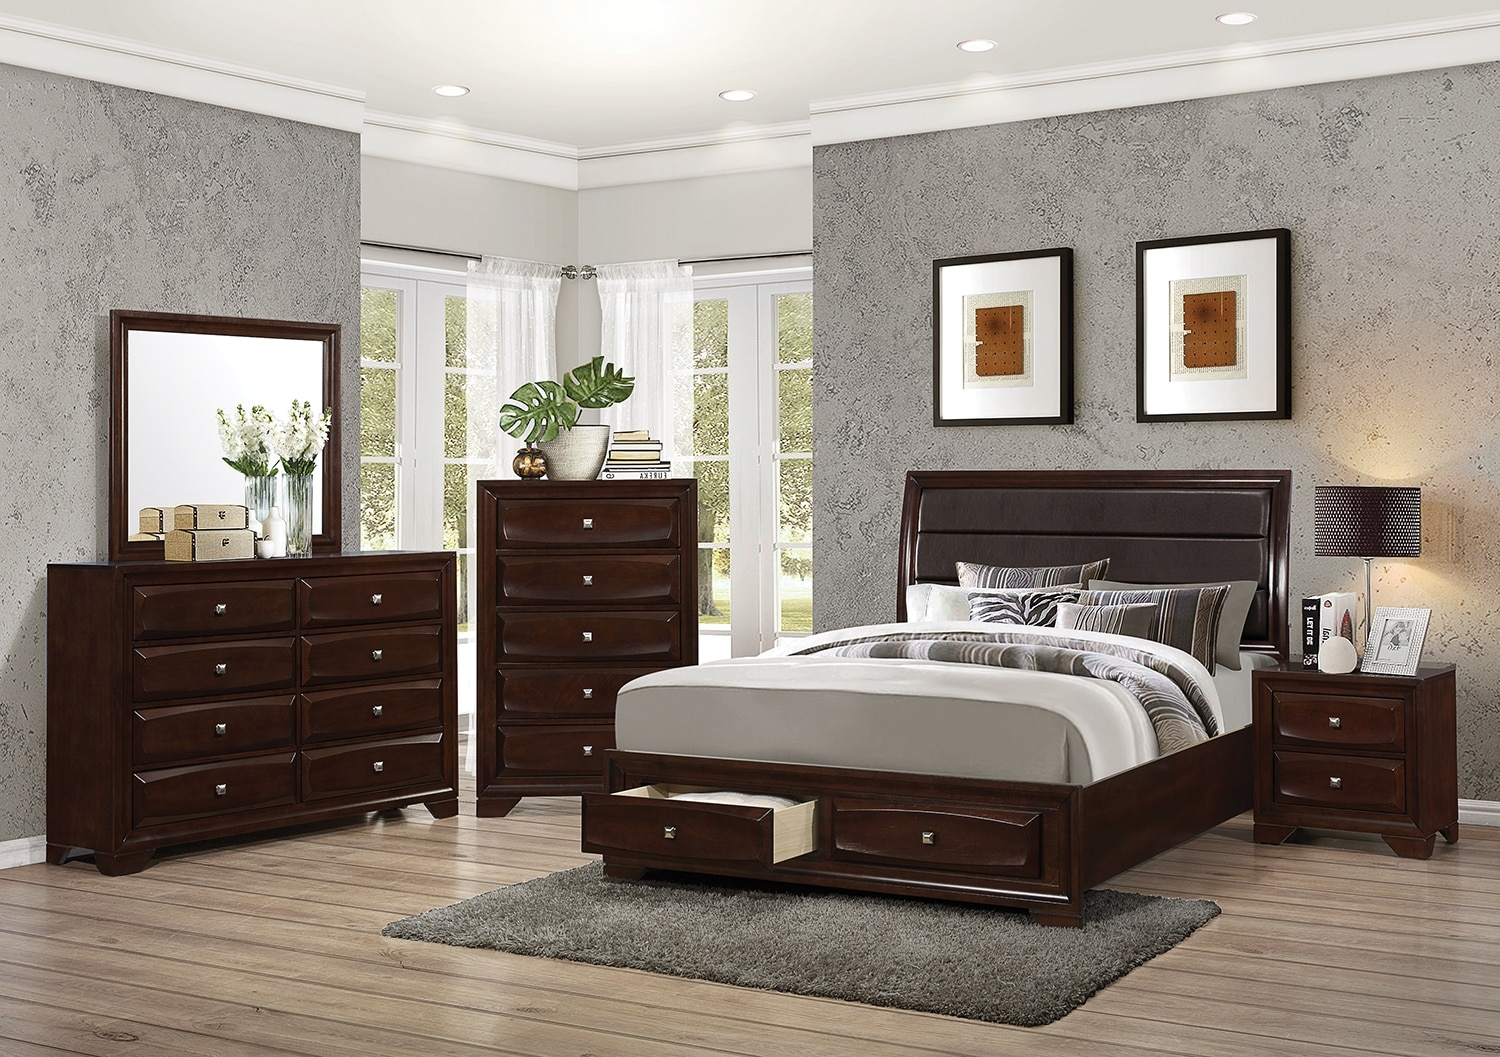 Bedroom Furniture - Jaxon 8-Piece Queen Storage Bedroom Package